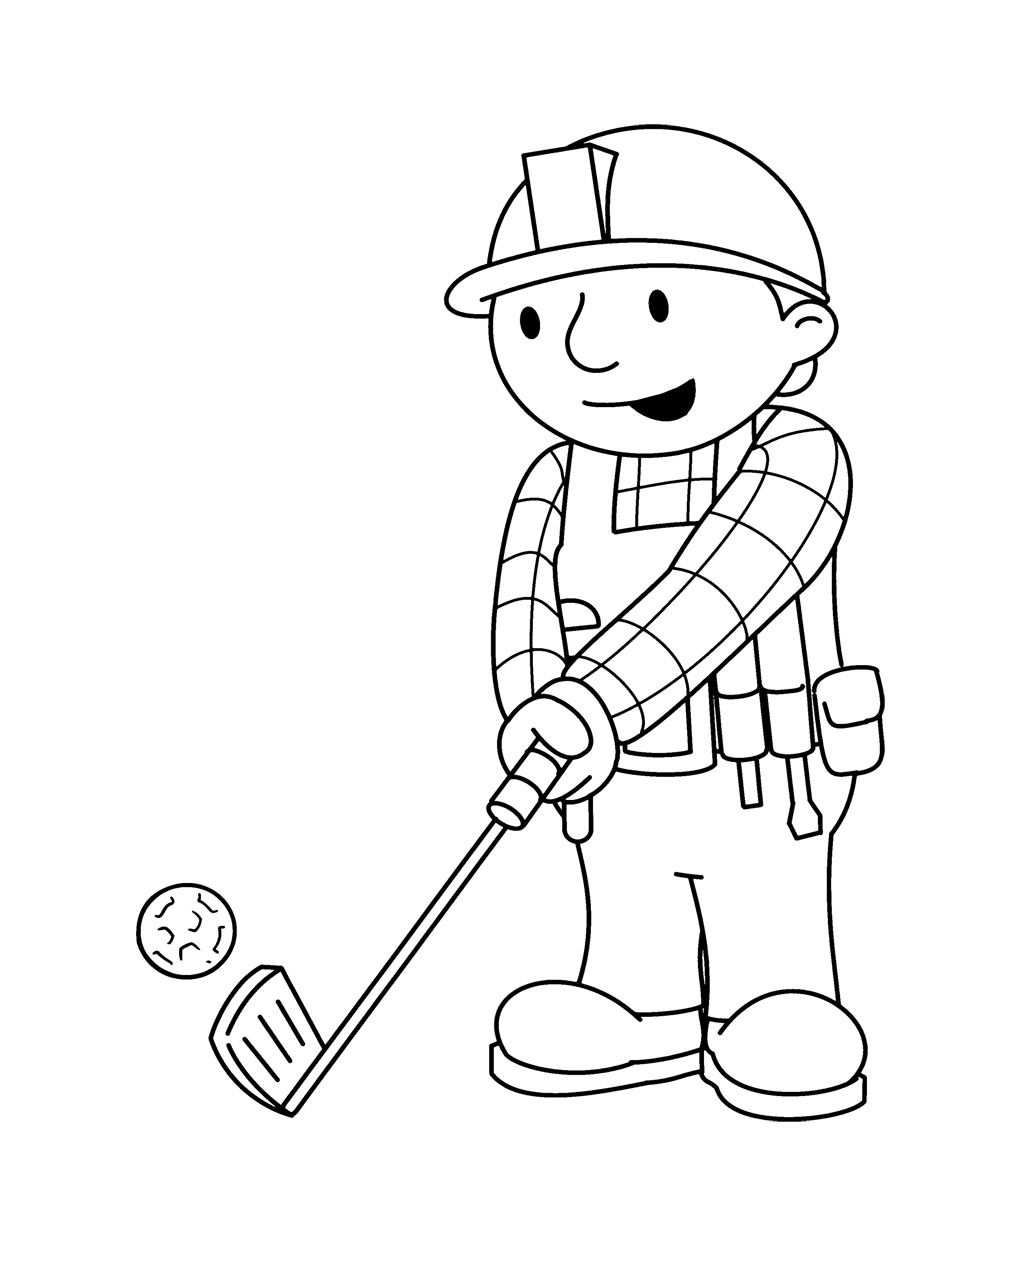 Golf Coloring Pages Best Coloring